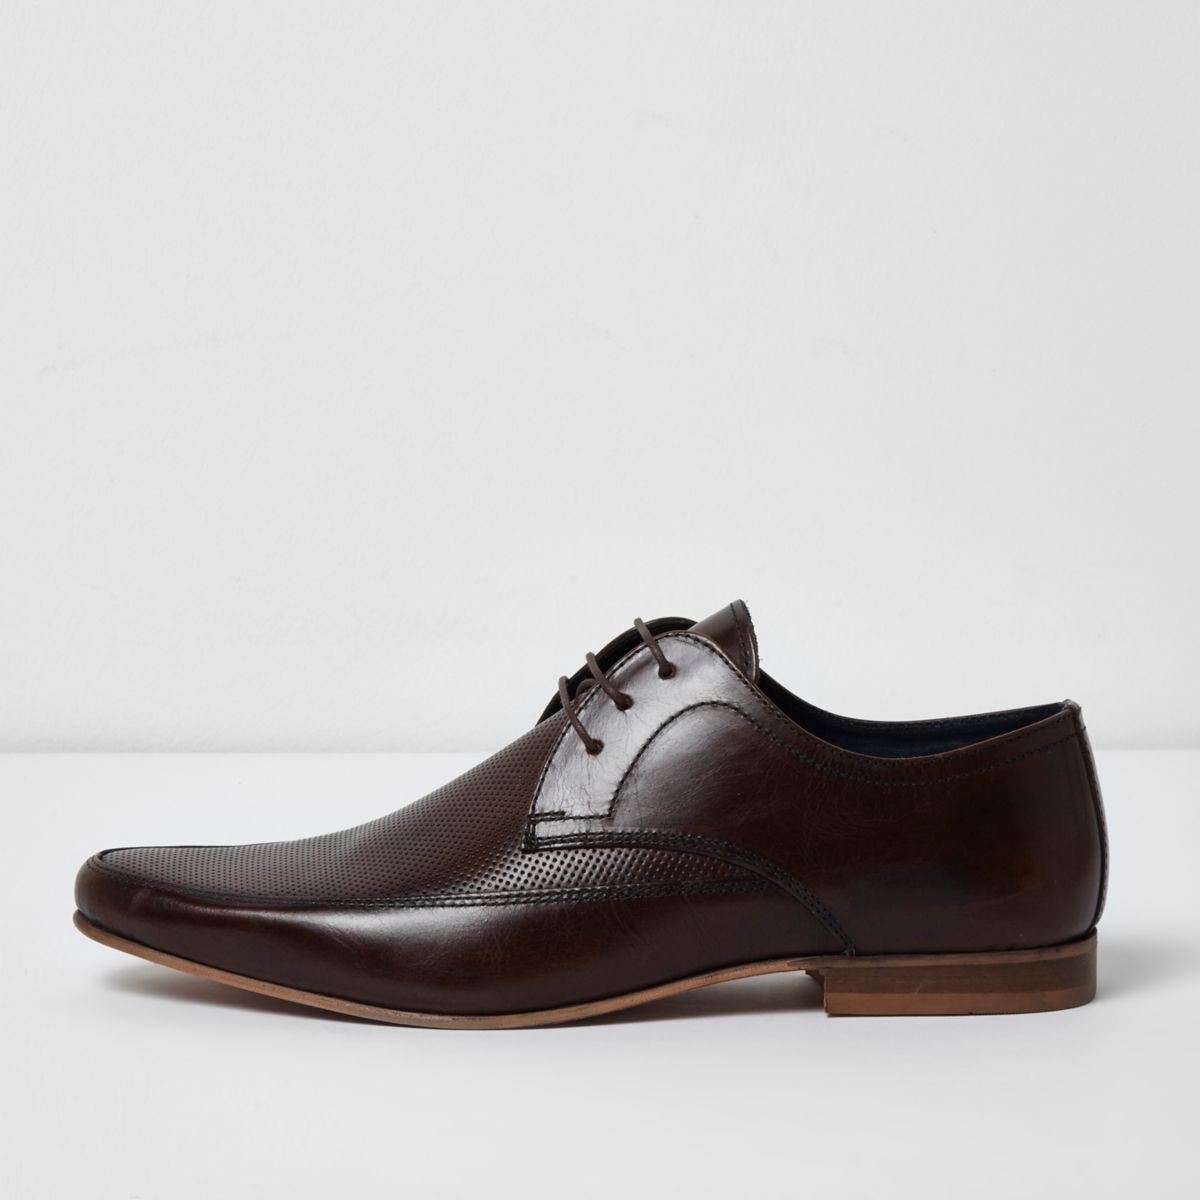 Dark brown perforated leather derby shoes